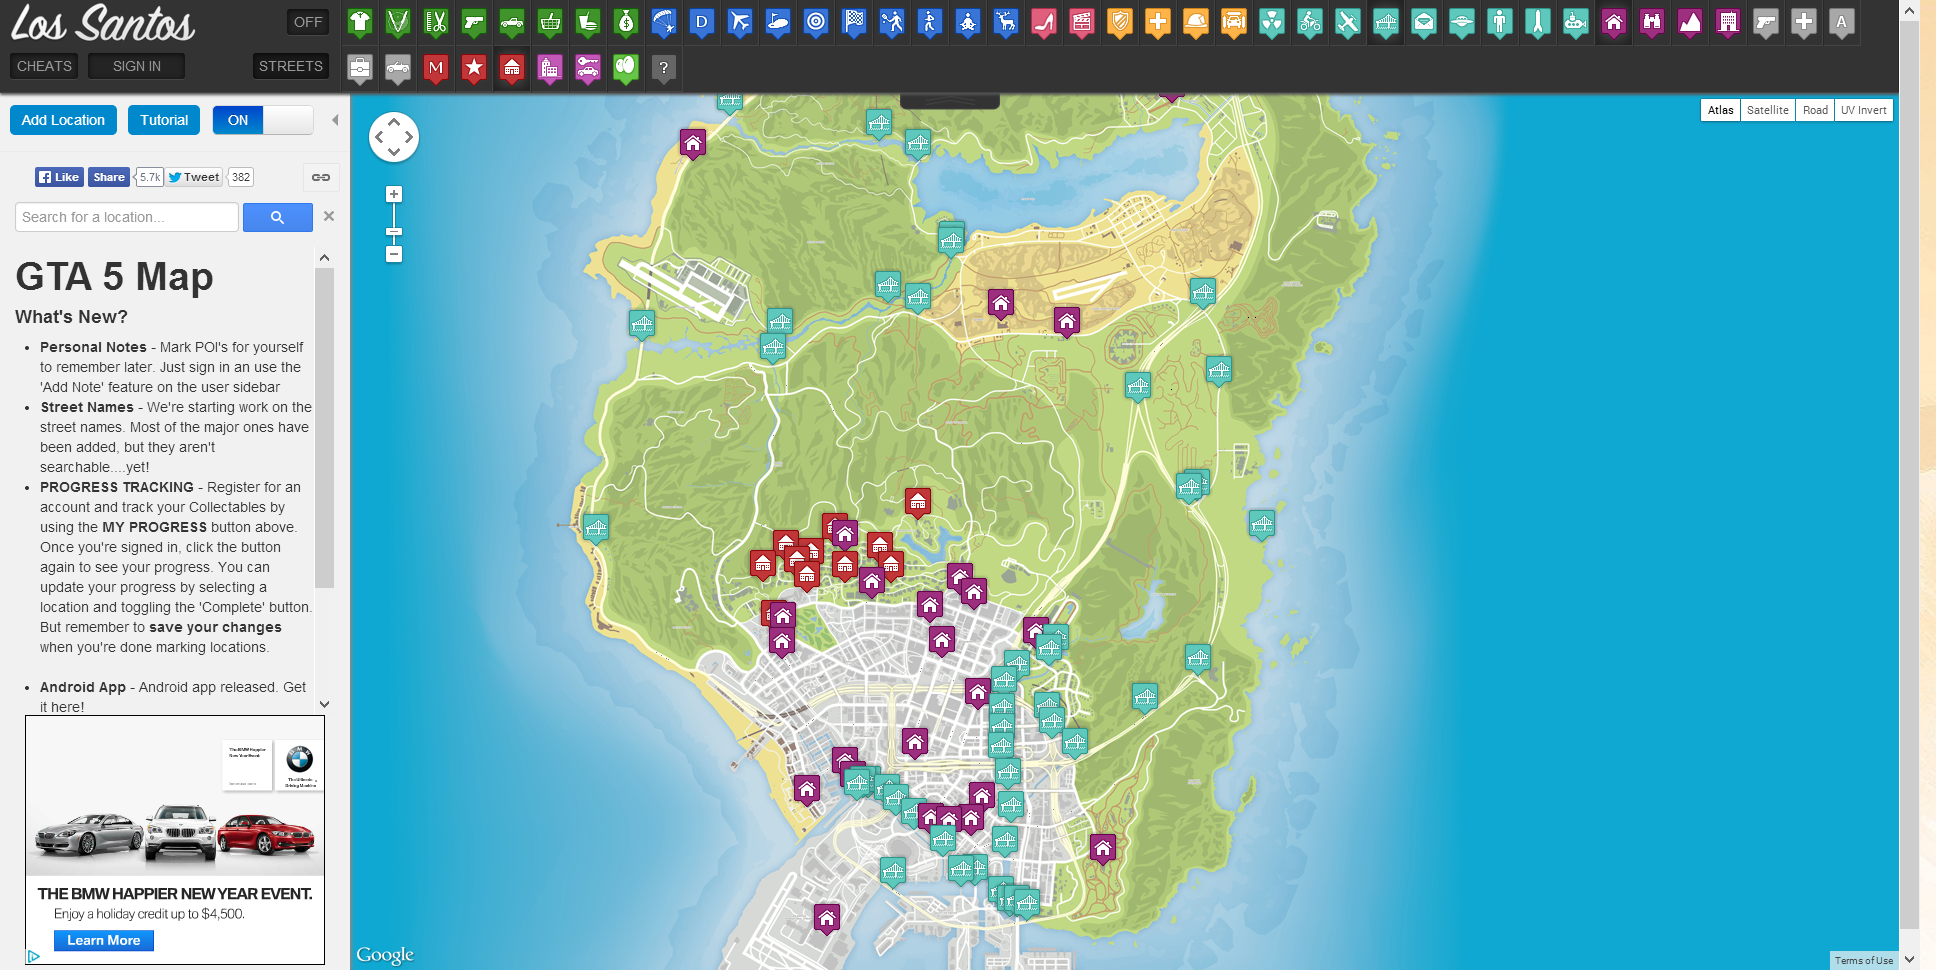 gta v stunt jump map with All Collectables Online Locations Mega Thread on Unique Stunt Jumps  28GTA Vice City 29 moreover Watch likewise Unique Stunt Jumps  GTA III furthermore Gta 5 Jump Locations also Gta 5 All Spaceship Parts Locations.